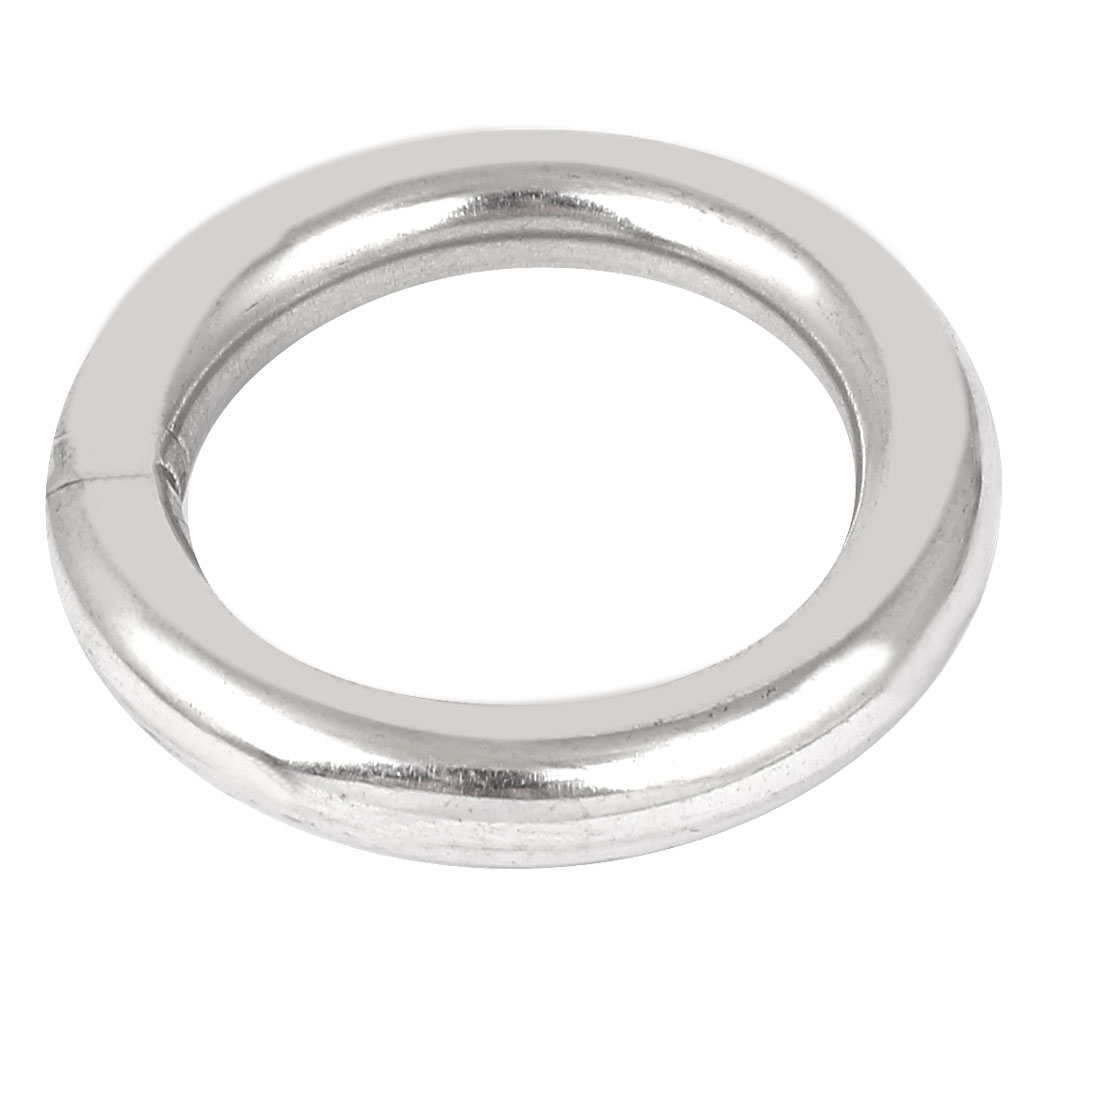 M10 x 60mm 201 Stainless Steel Webbing Strapping Welded O Rings